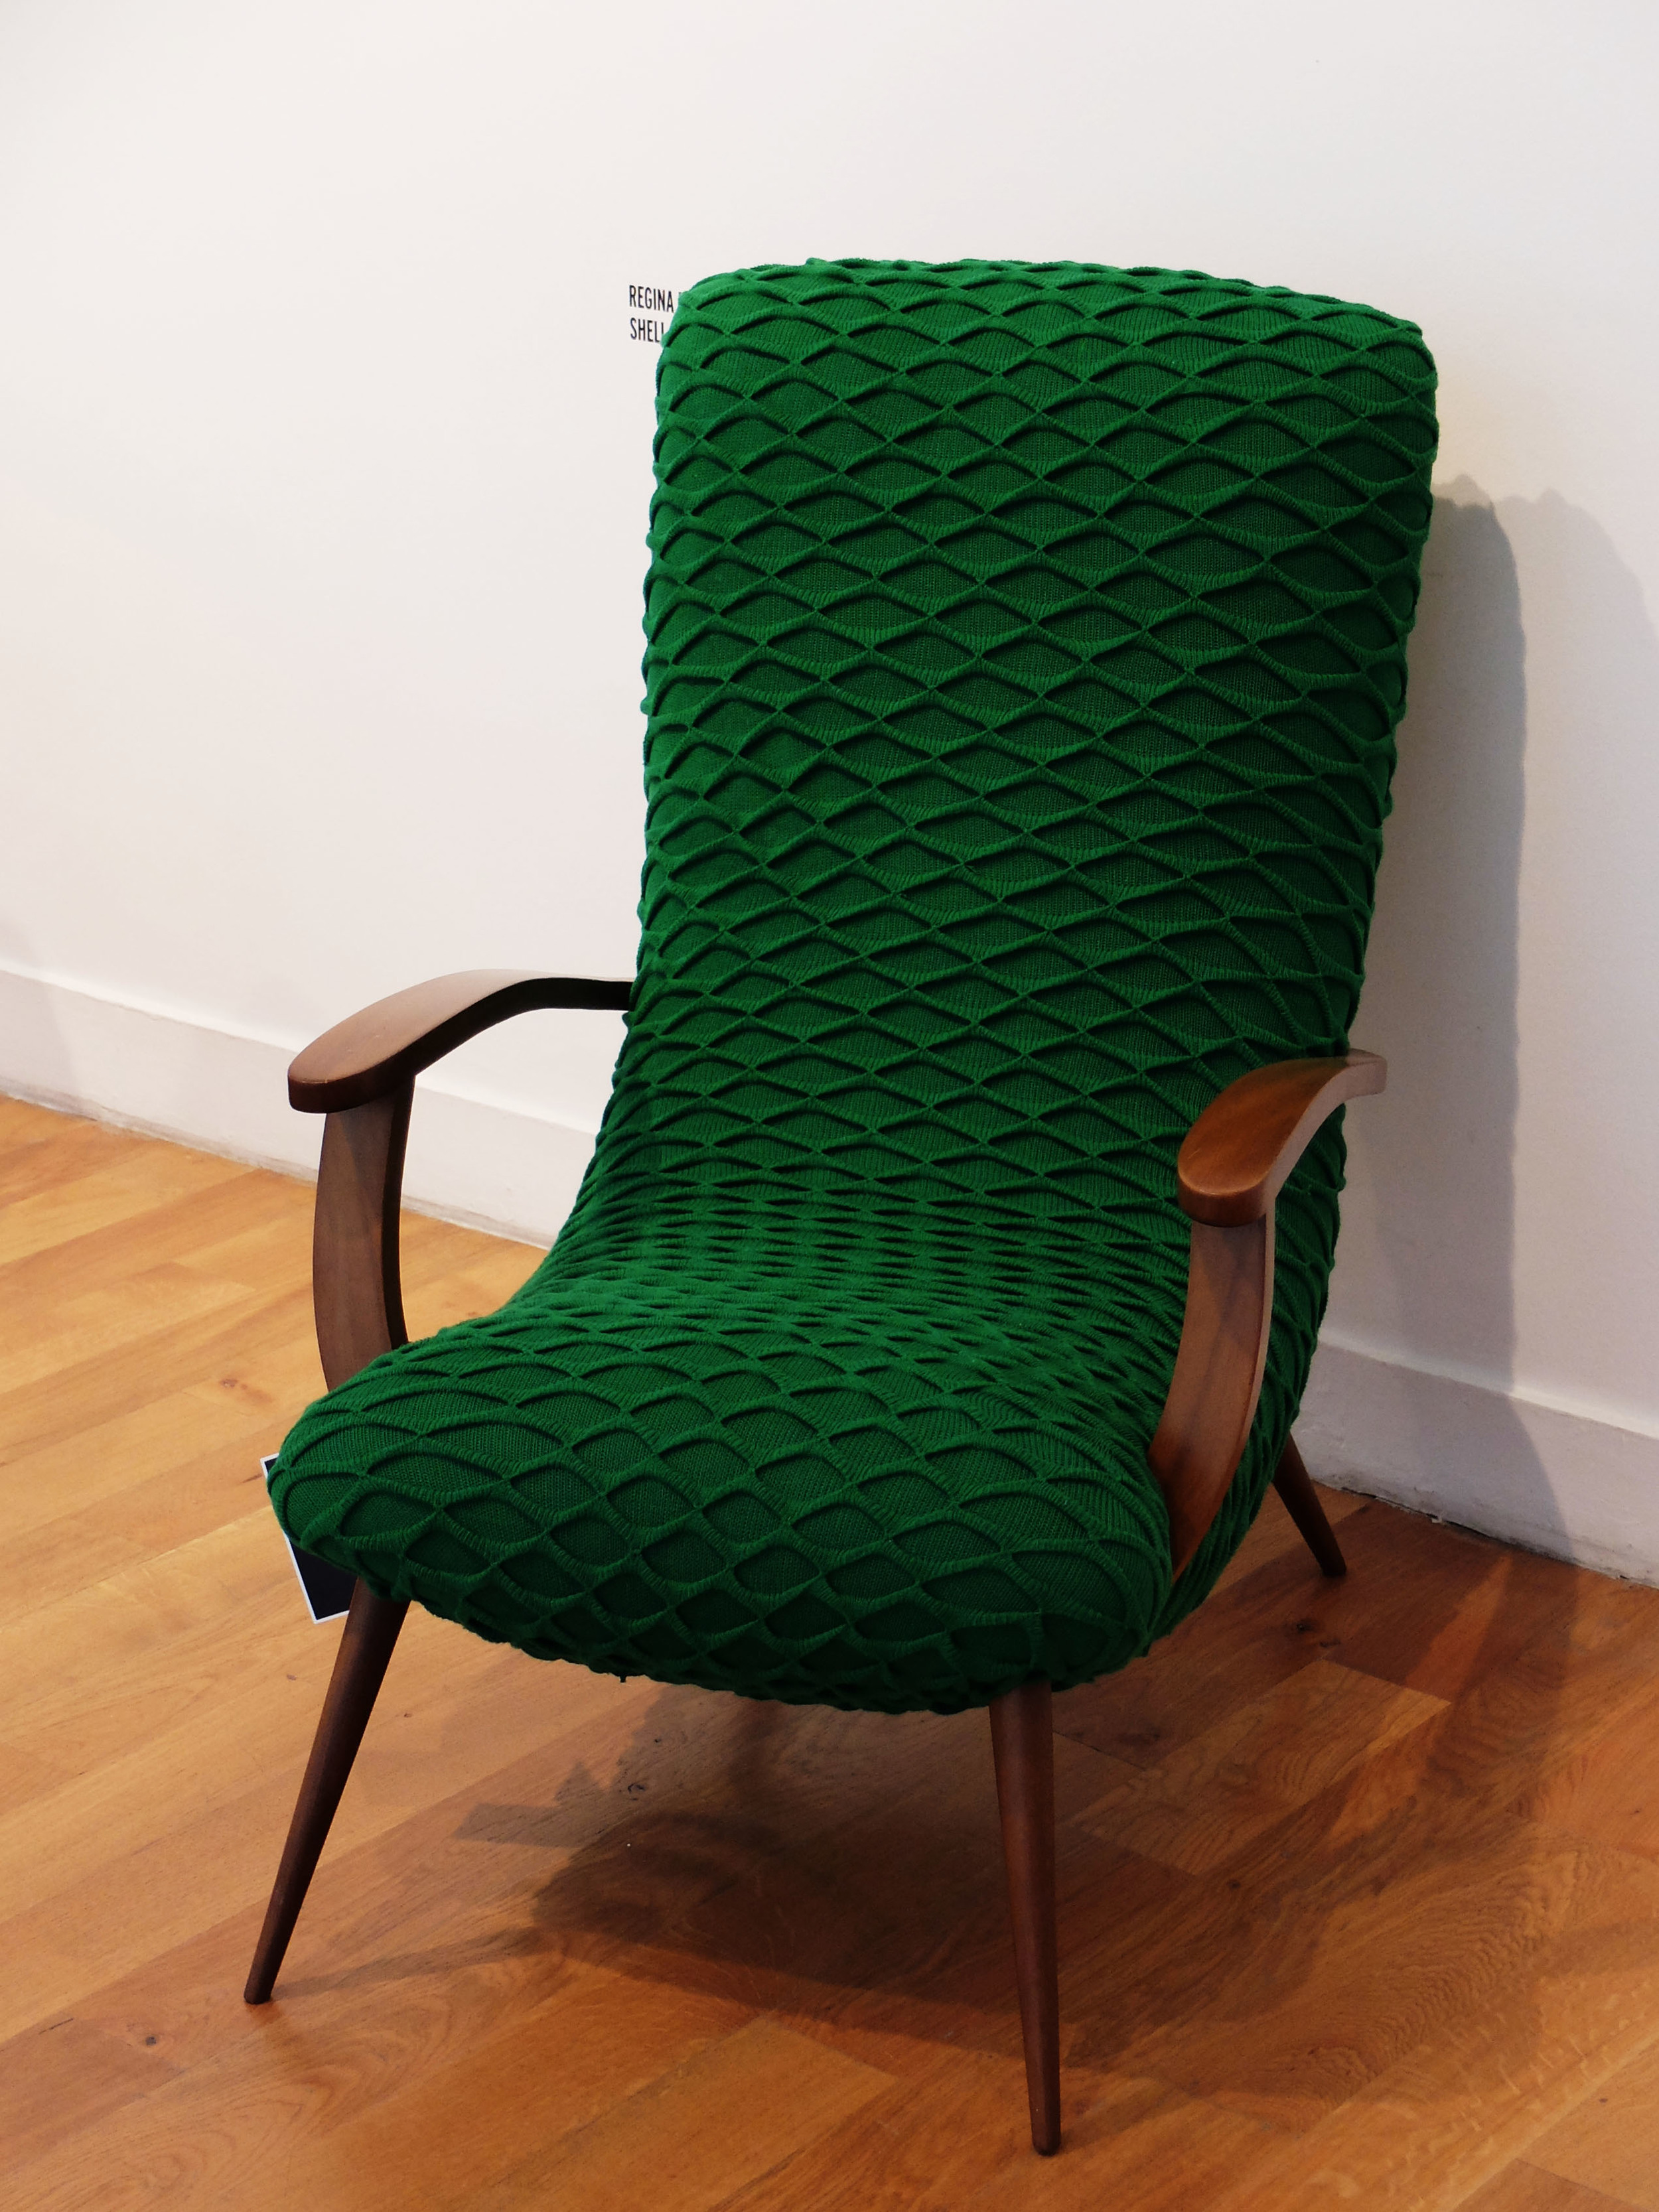 Knitted upholstery